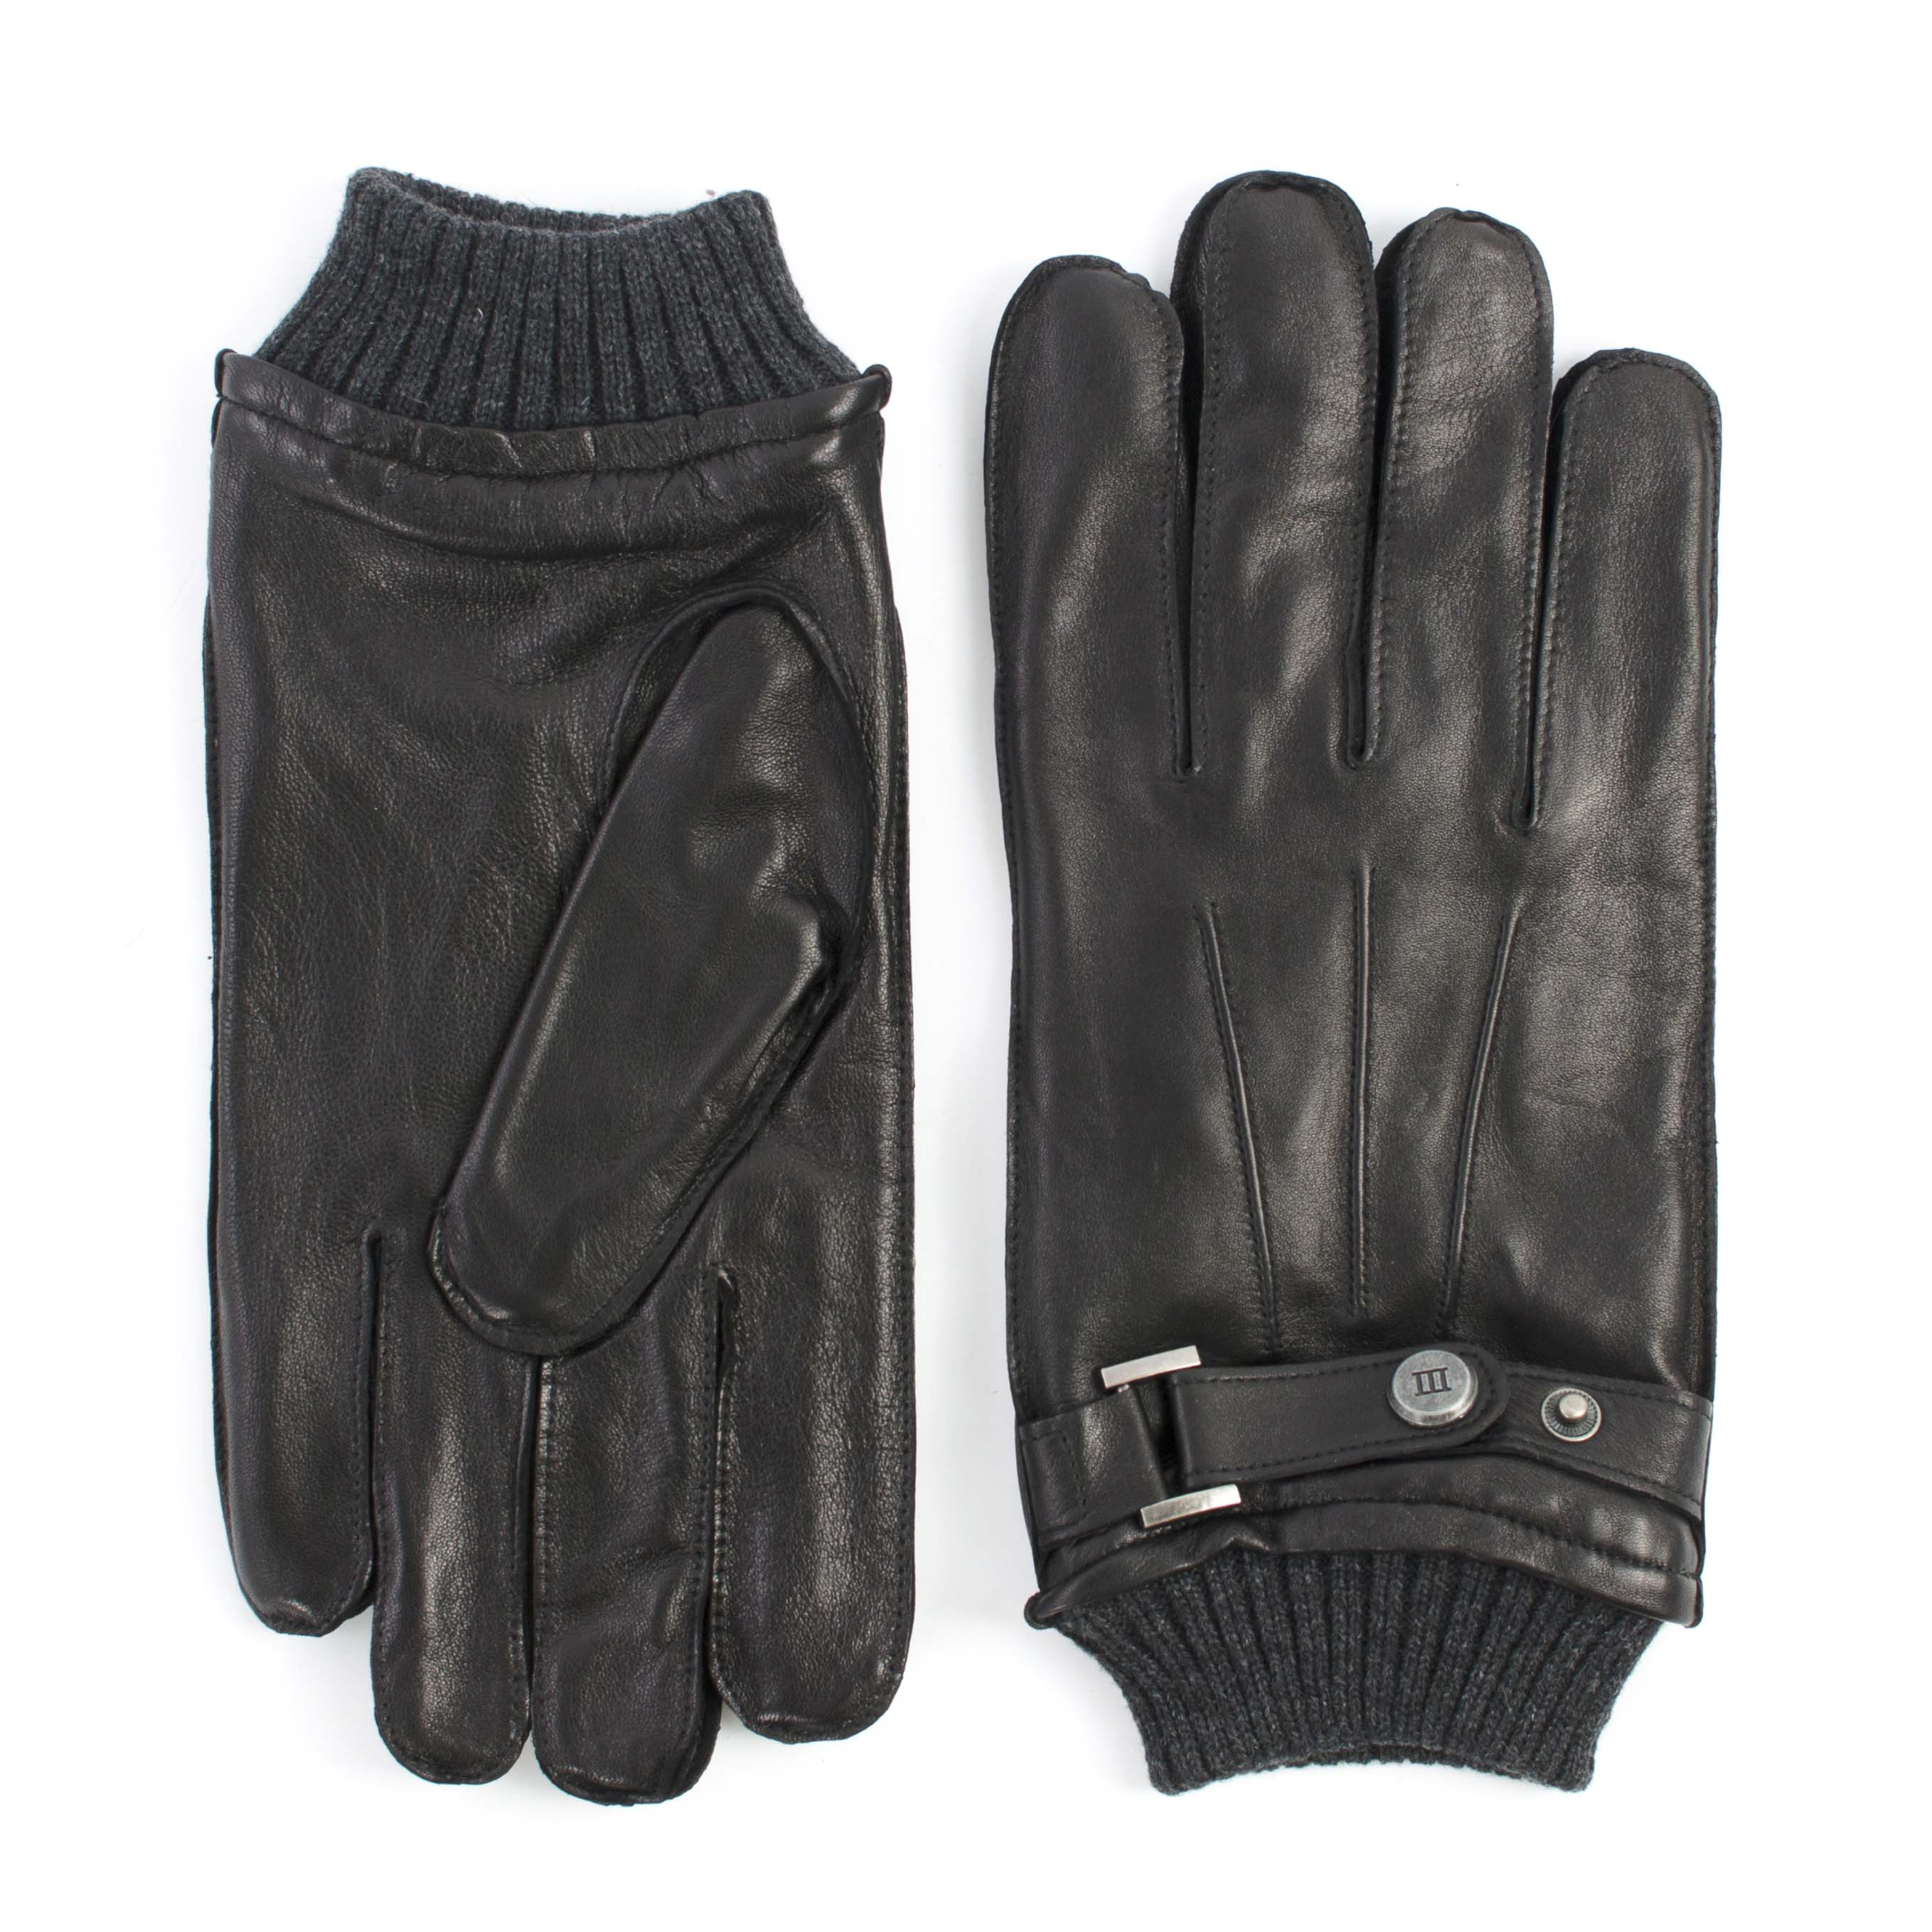 Black analine sheepleather gloves with knitted cuff